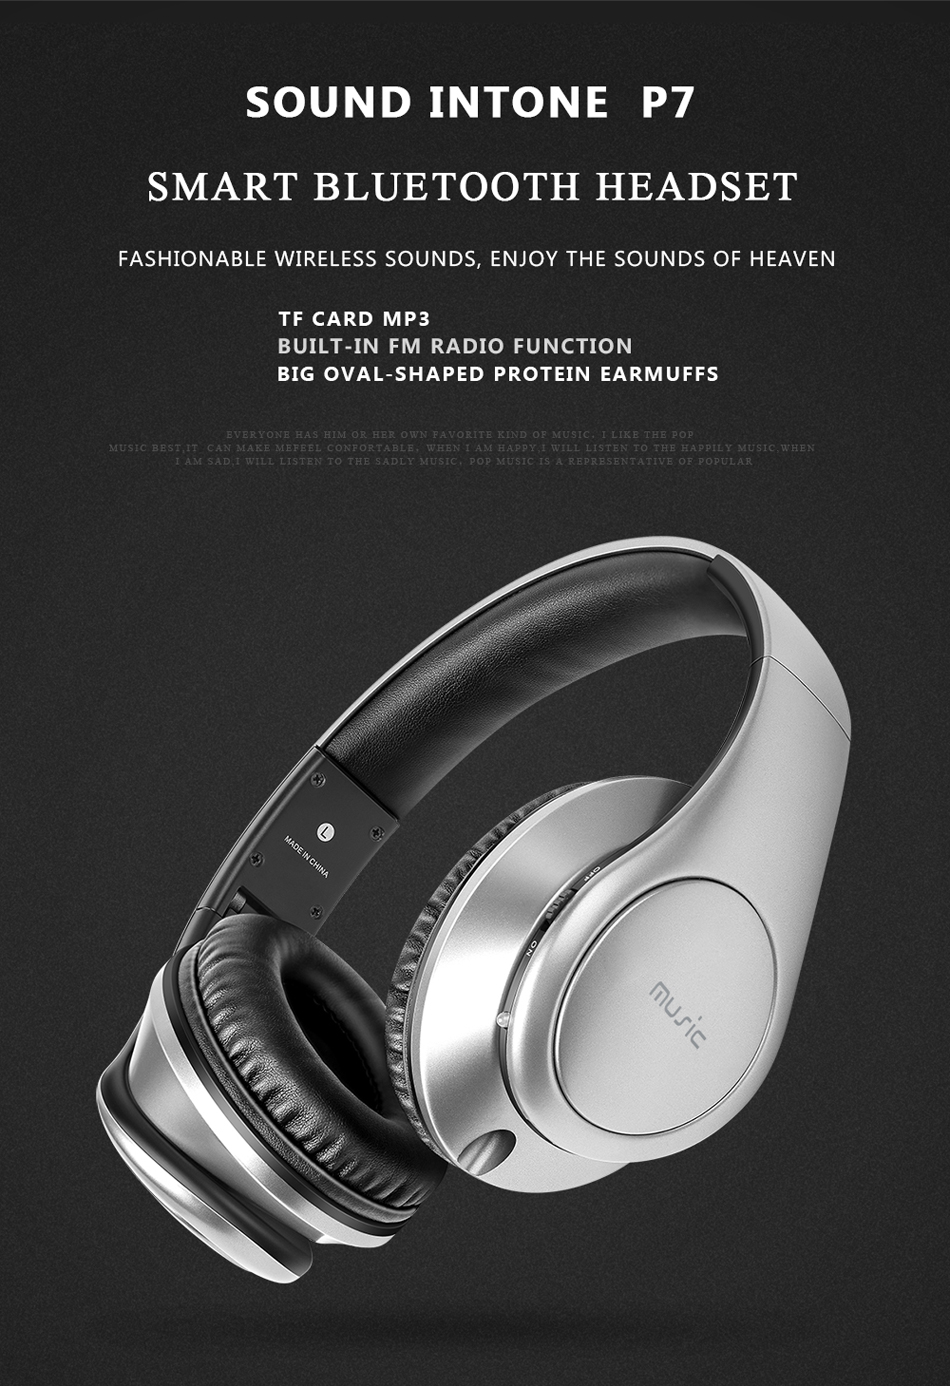 3bf1e056462 1 x Sound Intone P7 Bluetooth Headset. More Detailed Photos: Sound Intone  P7 Wireless Bluetooth Headphone Headset With Mic Support FM TF Card